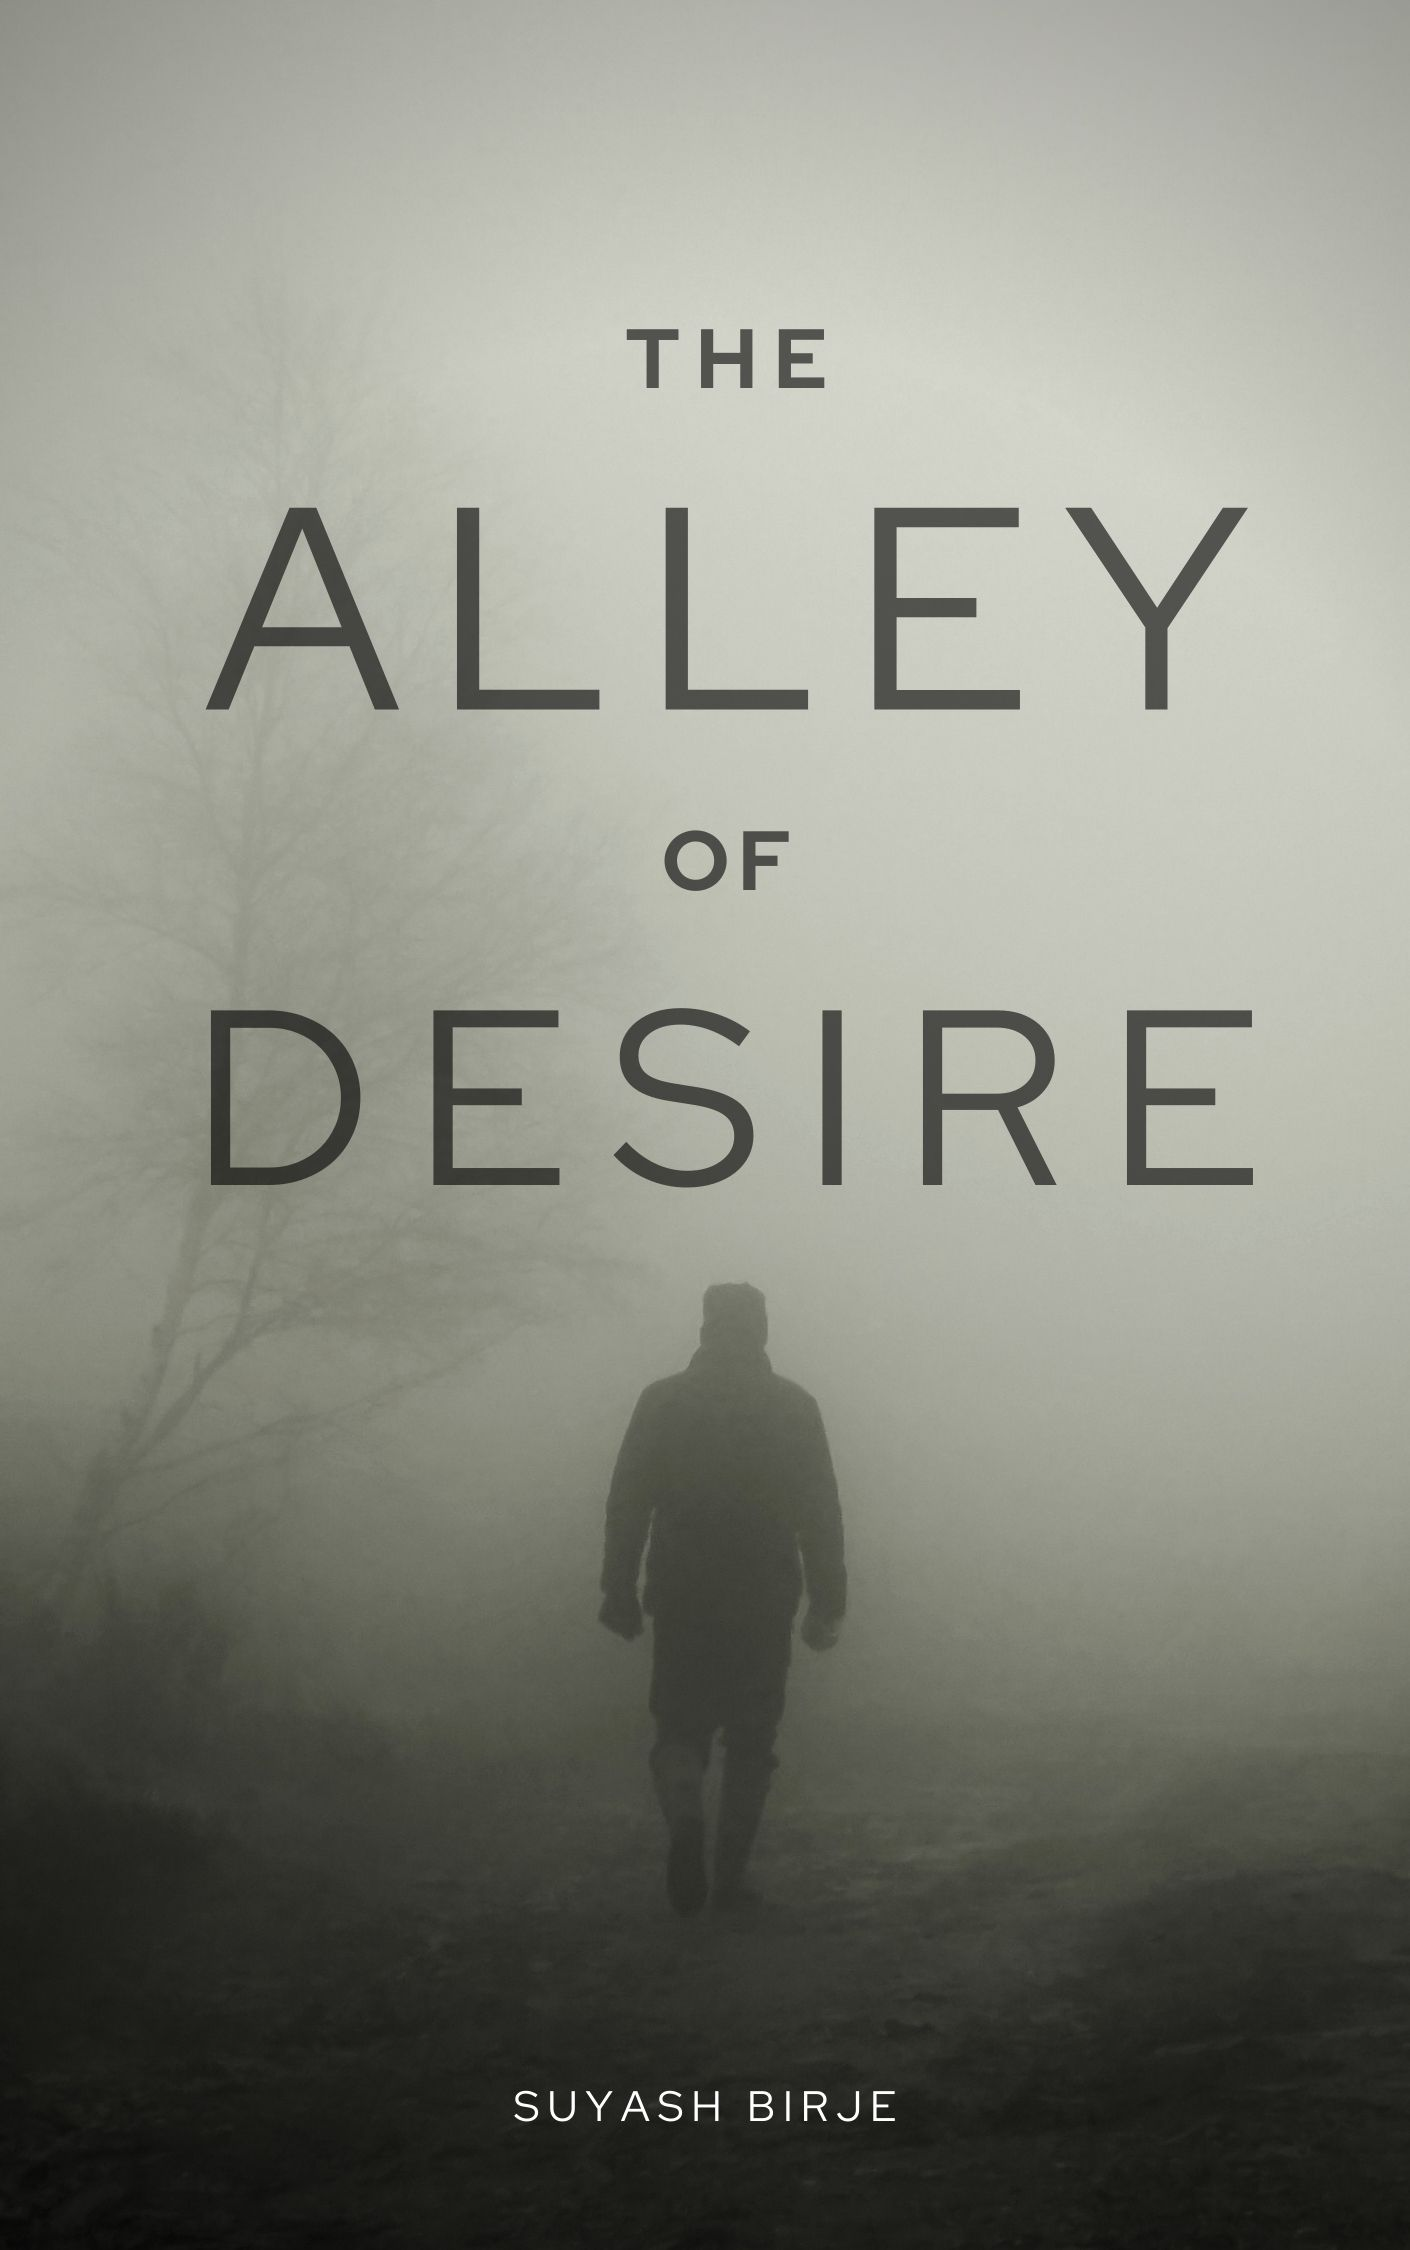 THE ALLEY OF DESIRE